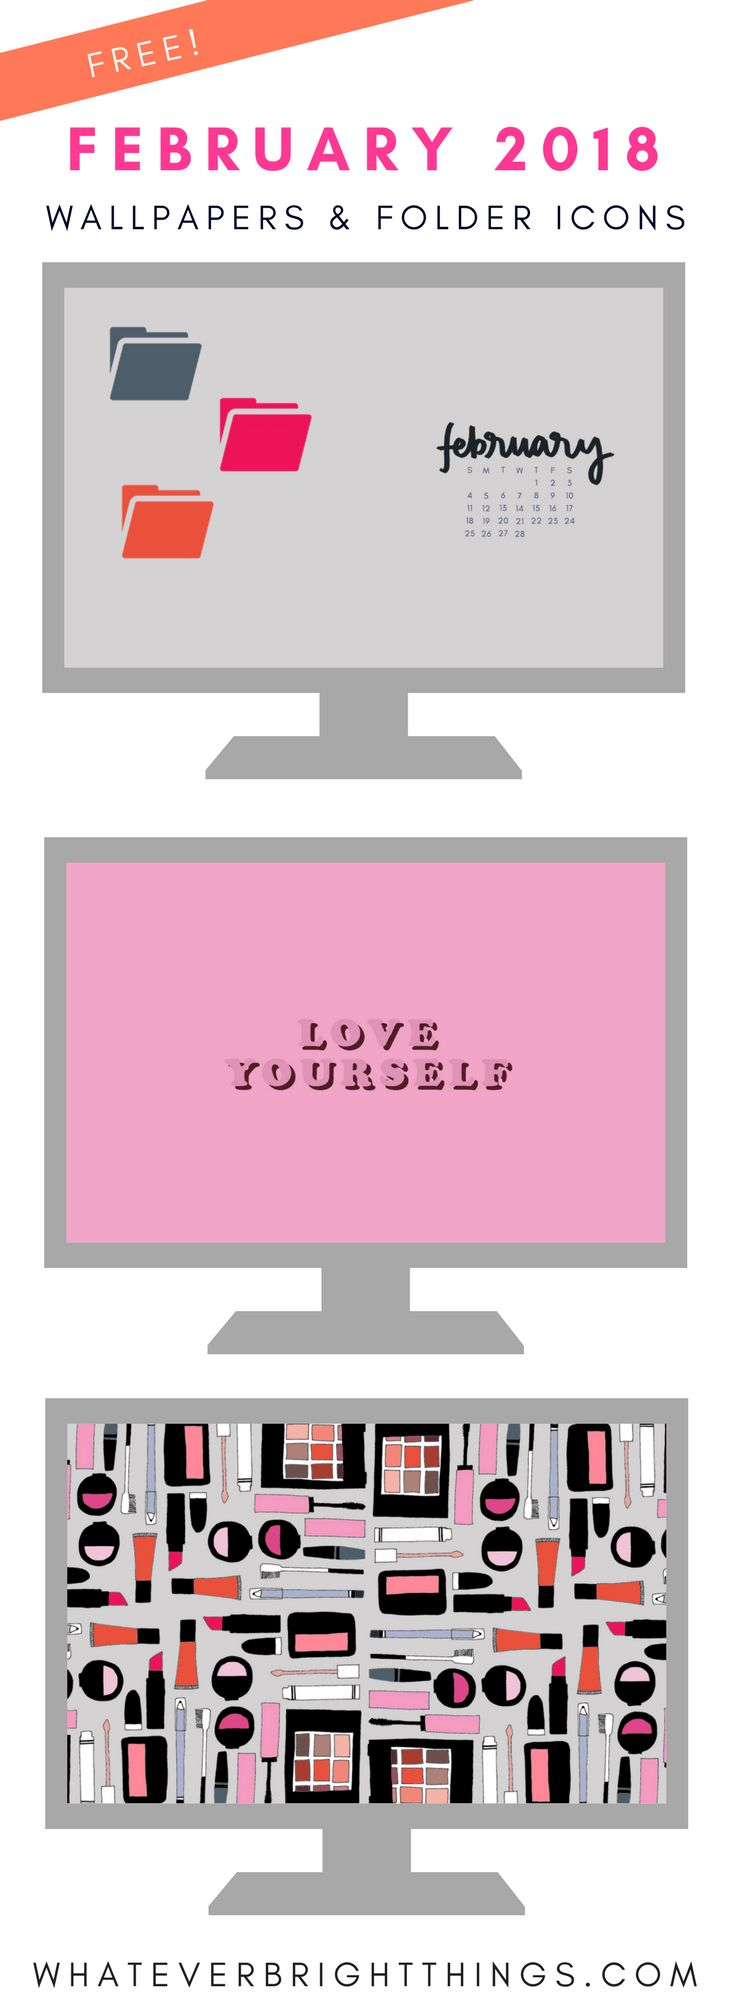 Decorate your Desktop for Valentine's Day with these February 2018 Wallpapers & Folder Icons! Whether you love a good pop of millennial pink, or a chic monochrome neutral look, there's a wallpaper for you! These computer designs are sure to help you organize your files and inspire your month.